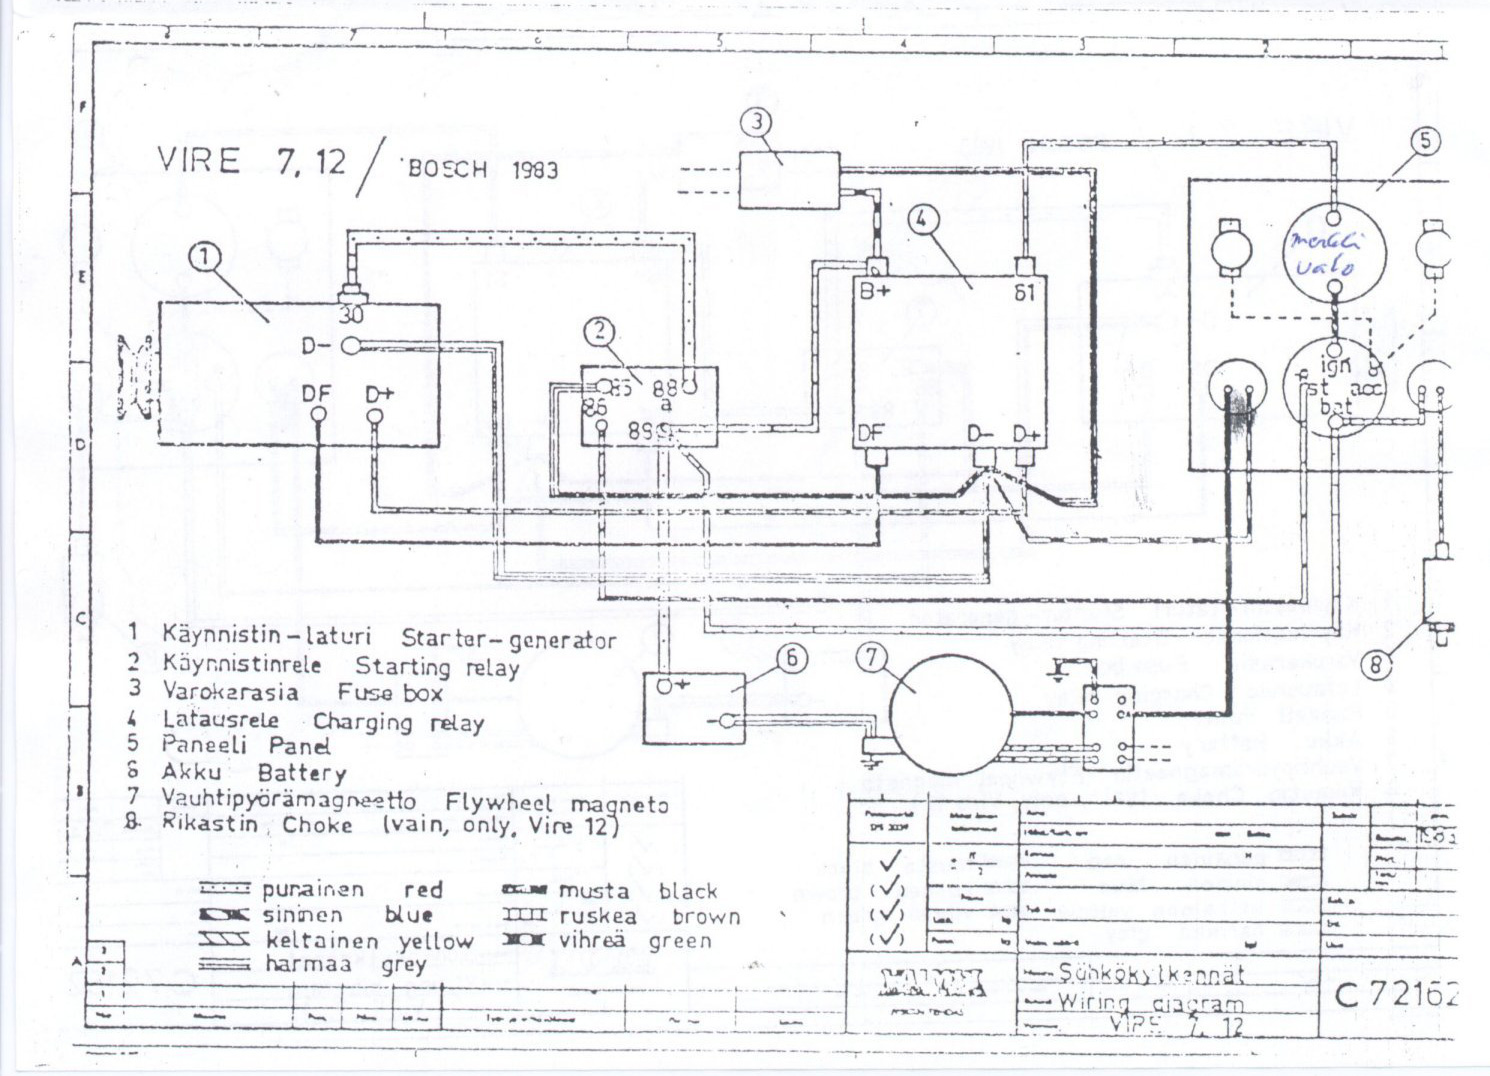 el_bosch bosch starter generator wiring diagram experts of wiring diagram \u2022